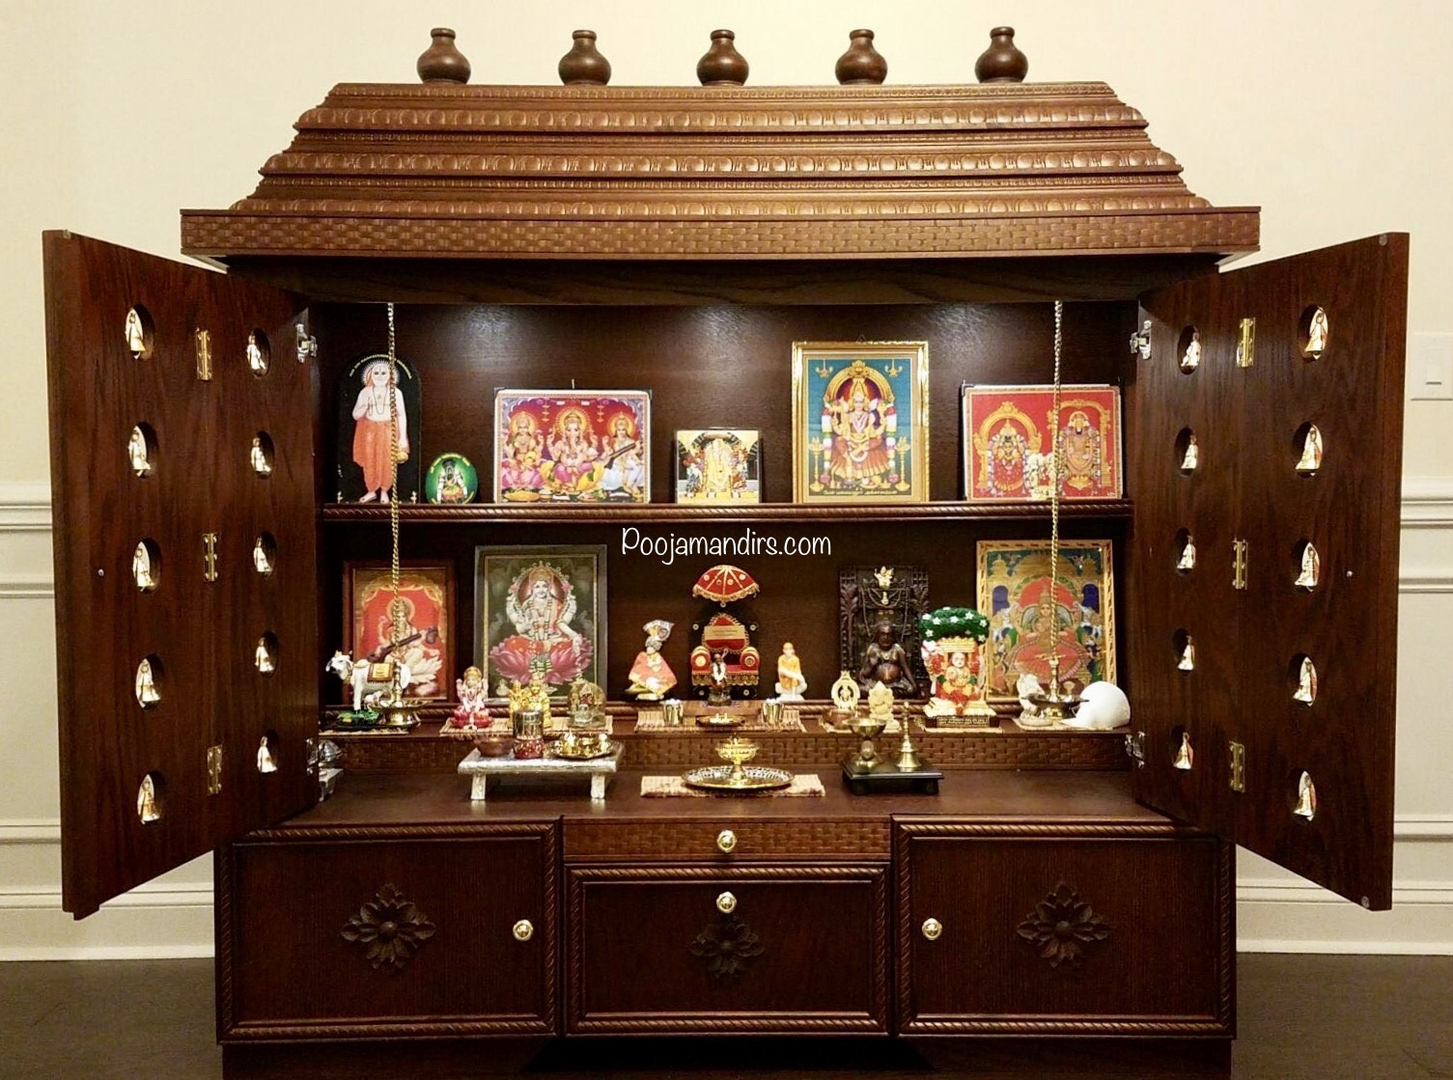 Emejing Pooja Mandir Designs For Home Images Decoration